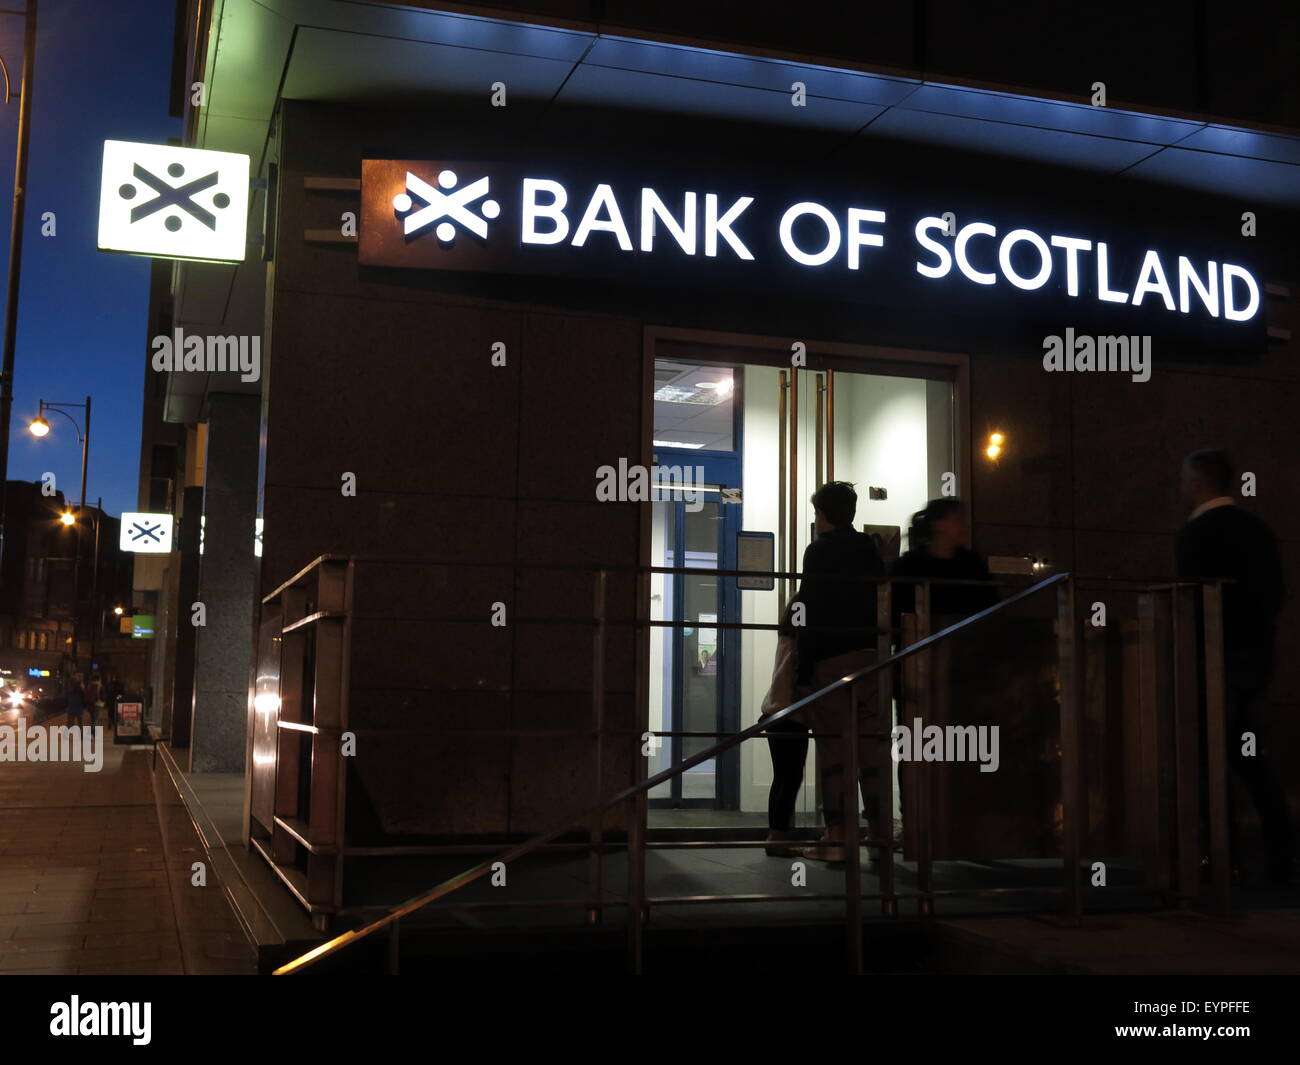 United Kingdom,public,publicly,owned,banking,will,the,last,person,to,leave,turn,the,light,out,Edinburgh,Scotland,UK,asset,selloff,street,dusk,people,queue,queuing,Bank of Scotland,Public Asset,Sell Off,GoTonySmith,Buy Pictures of,Buy Images Of